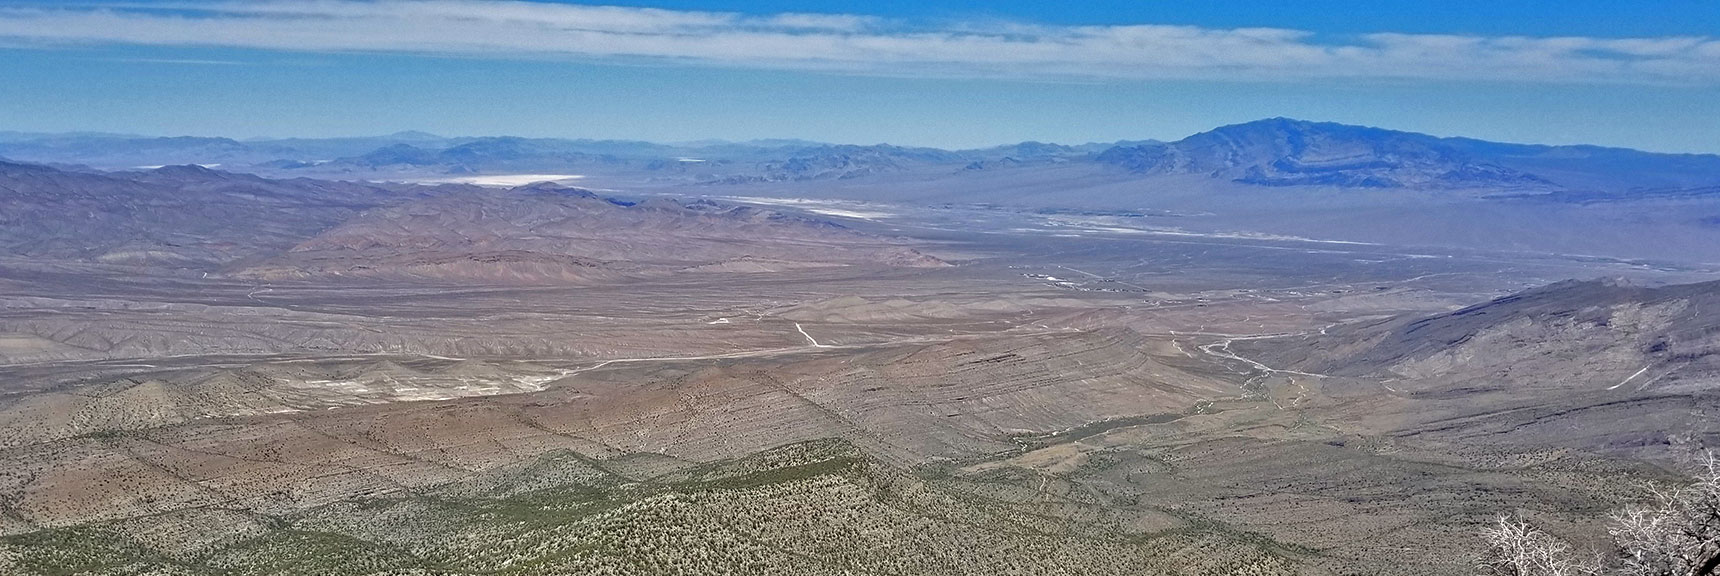 View Up I-95 Corridor Toward Reno from La Madre Mountain Summit | La Madre Mountain Northern Approach, Nevada